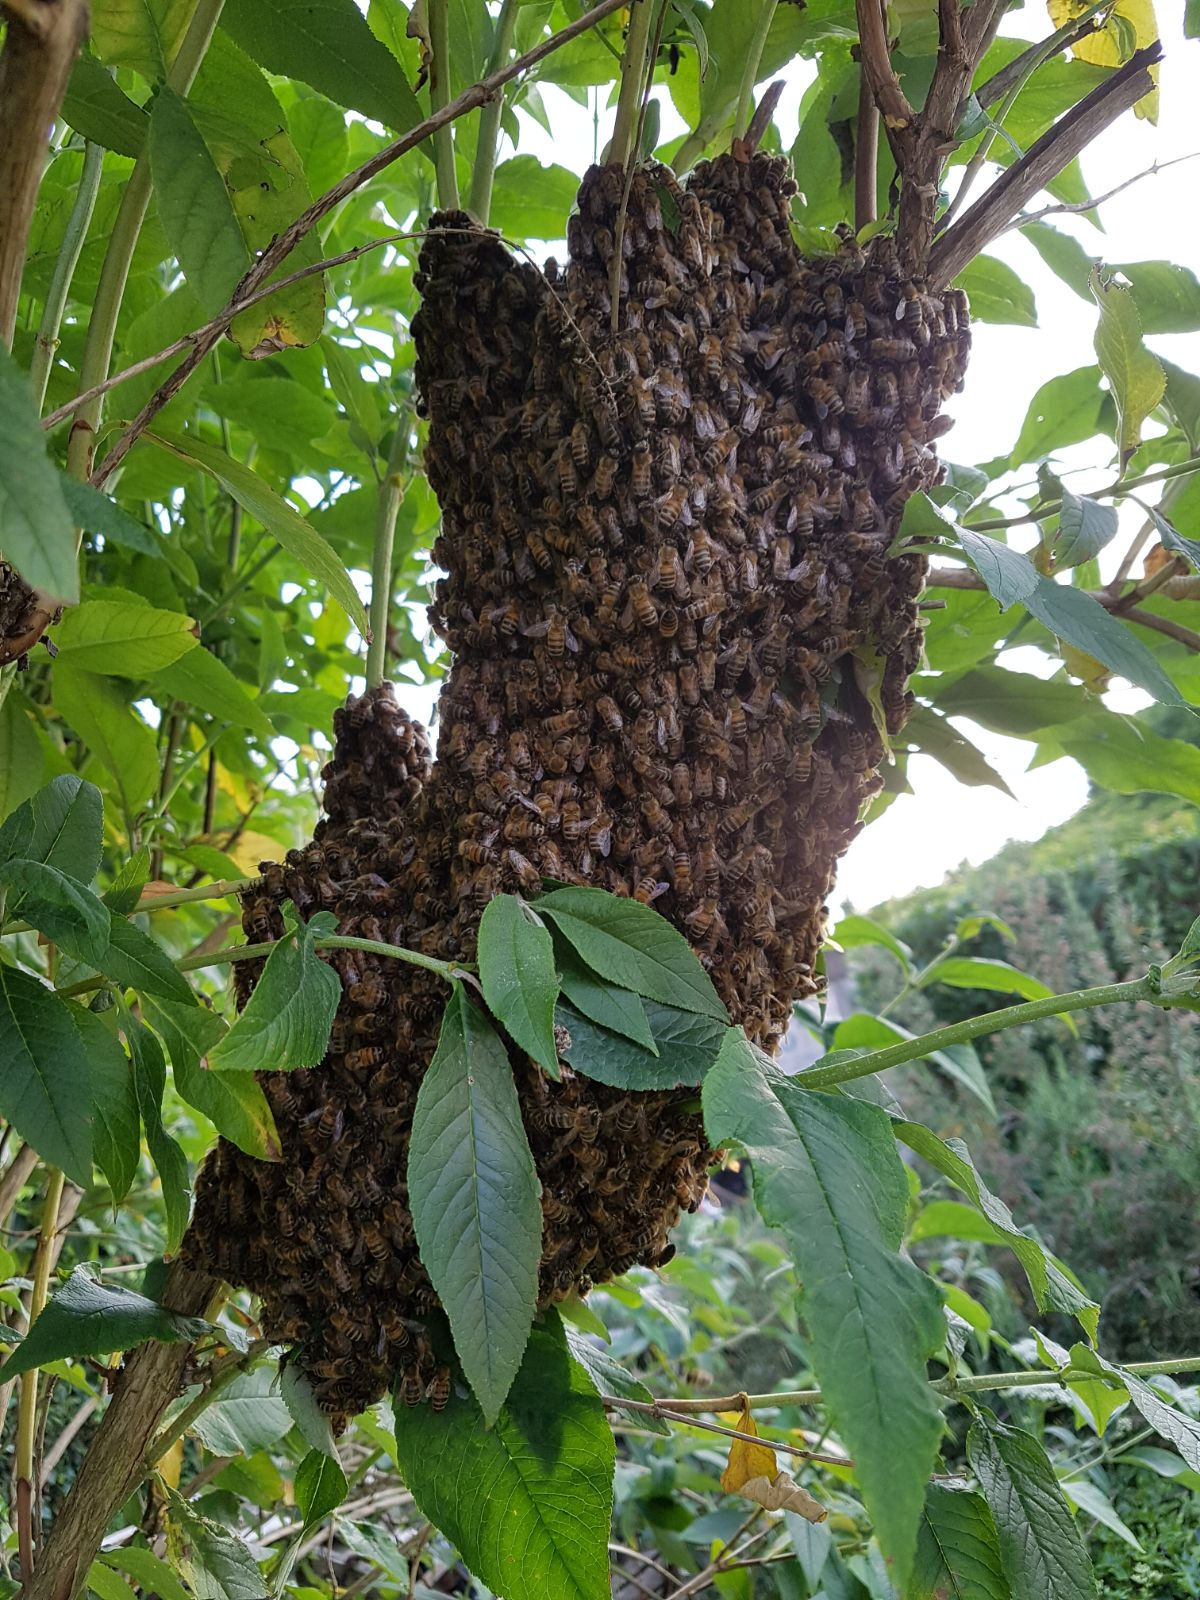 Swarm of bees on the tree